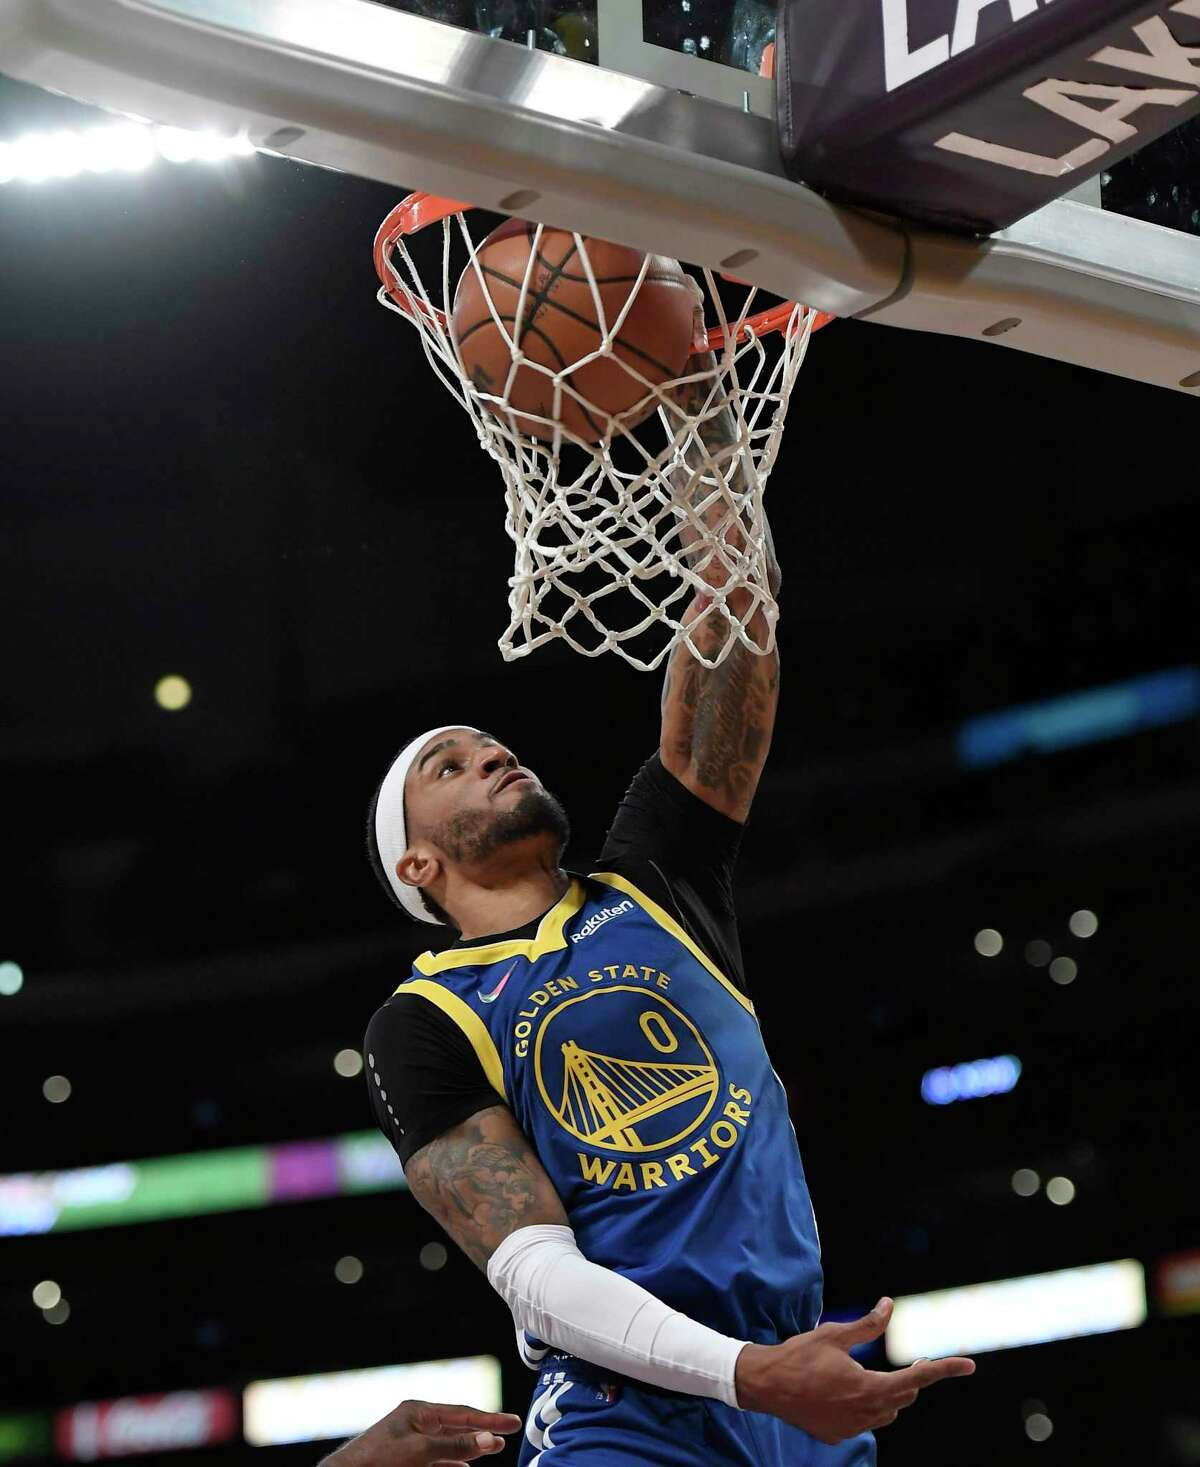 LOS ANGELES, CA - OCTOBER 12: Gary Payton II #0 of the Golden State Warriors dunks the ball against the Los Angeles Lakers during the first half of a preseason basketball game at Staples Center on October 12, 2021 in Los Angeles, California. NOTE TO USER: User expressly acknowledges and agrees that, by downloading and/or using this Photograph, user is consenting to the terms and conditions of the Getty Images License Agreement. (Photo by Kevork Djansezian/Getty Images)